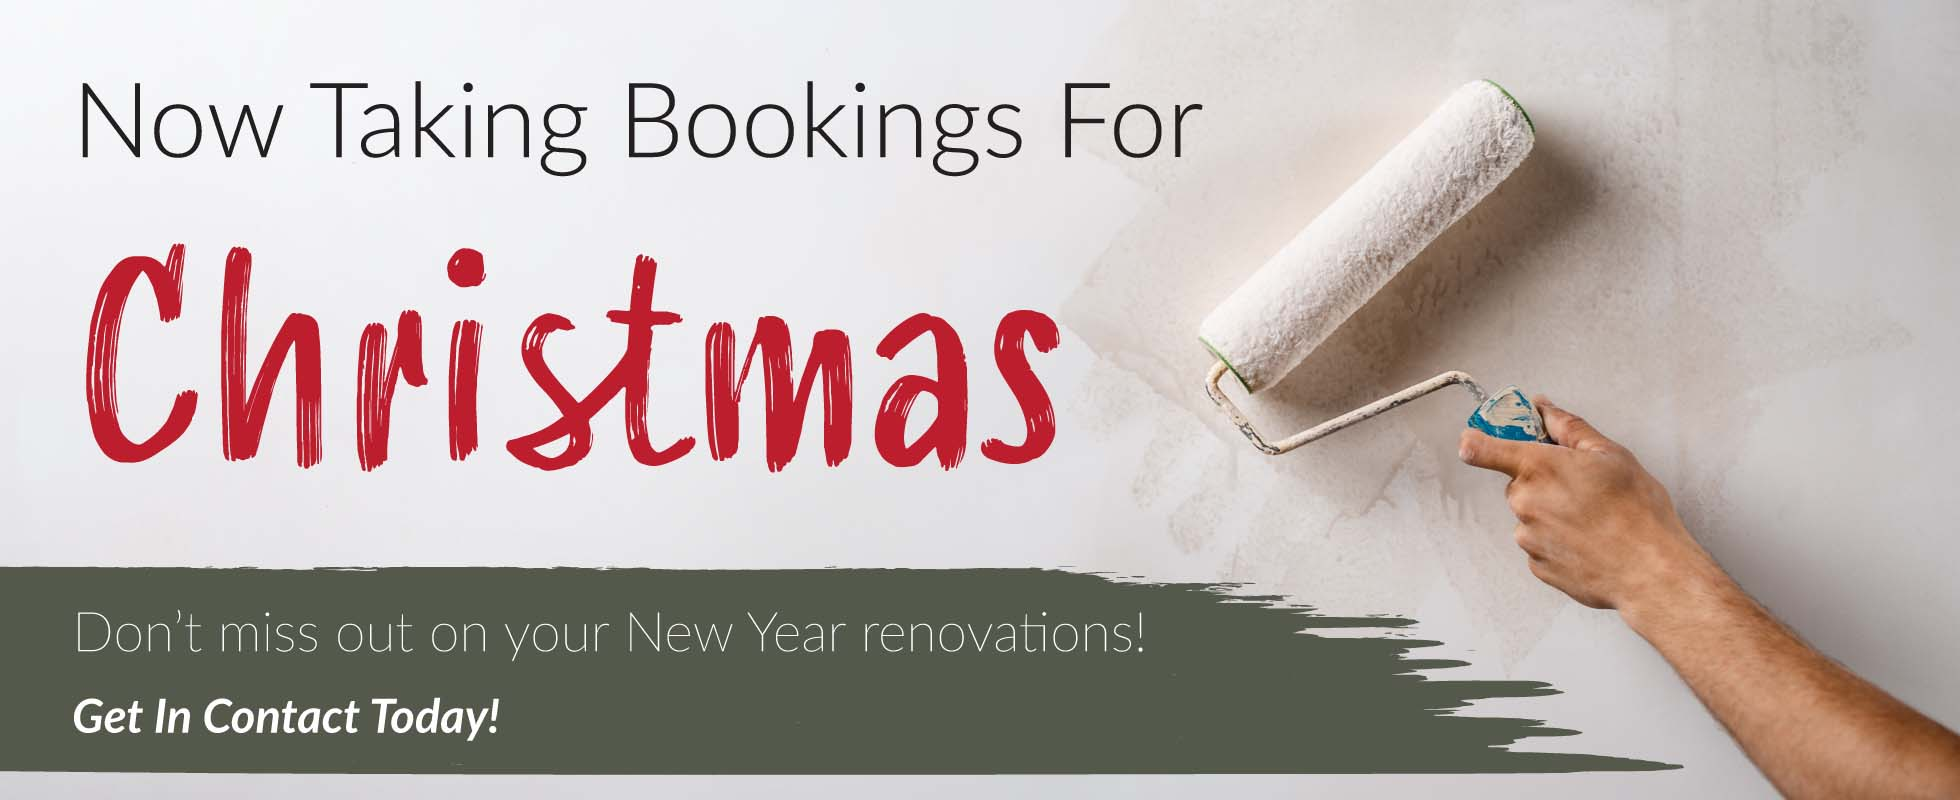 taking-bookings-for-christmas-banner